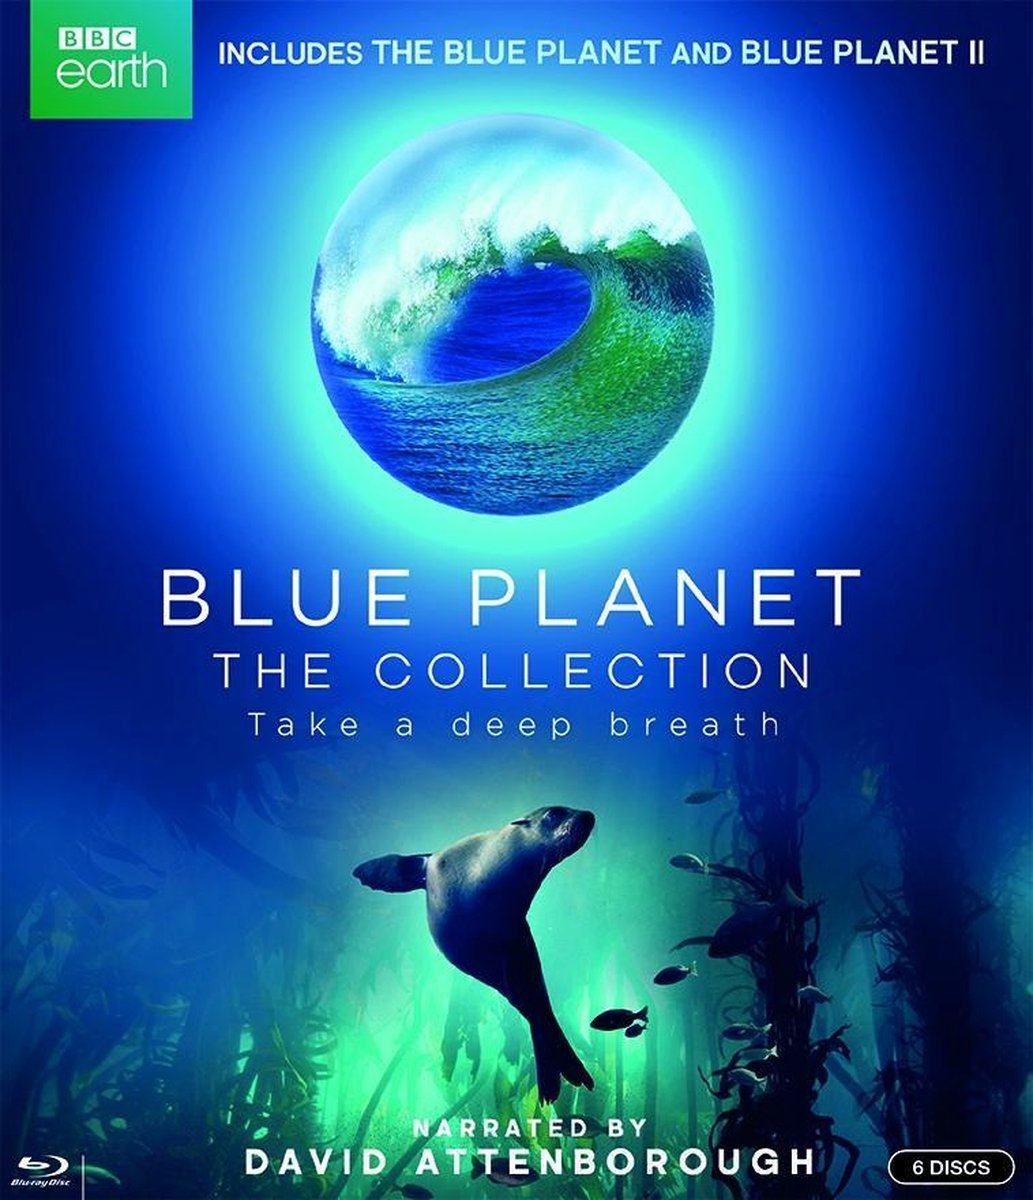 Blue Planet The Collection I & II (Blu-ray) - Documentary/Bbc Earth